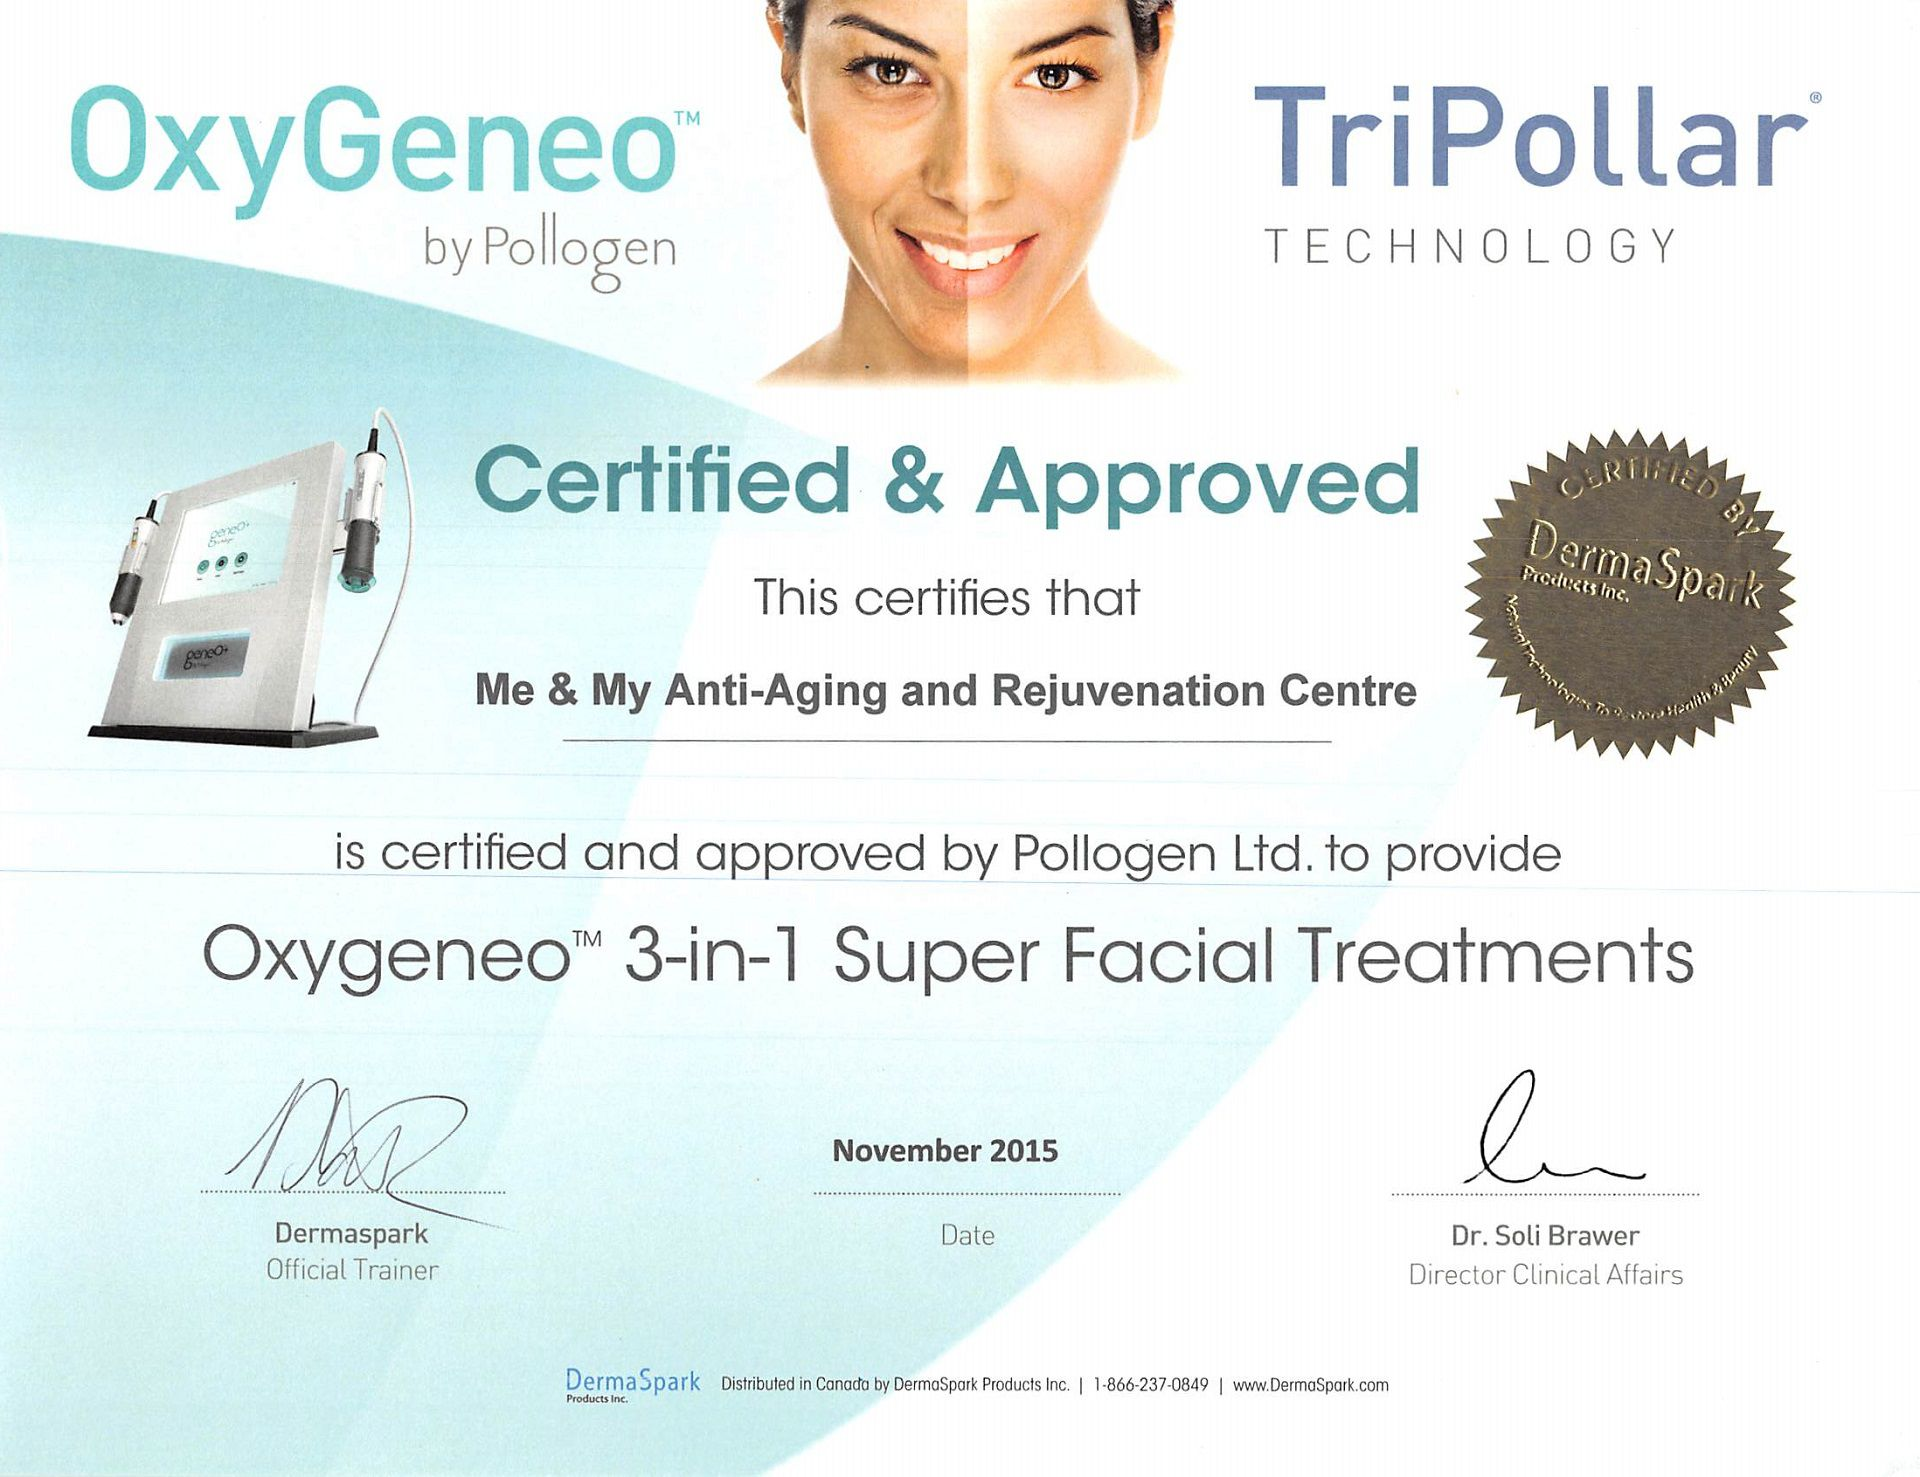 Me & My Anti-Aging and Rejuvenation centre Barrie Oxygeneo Super Facial Treatments certificate